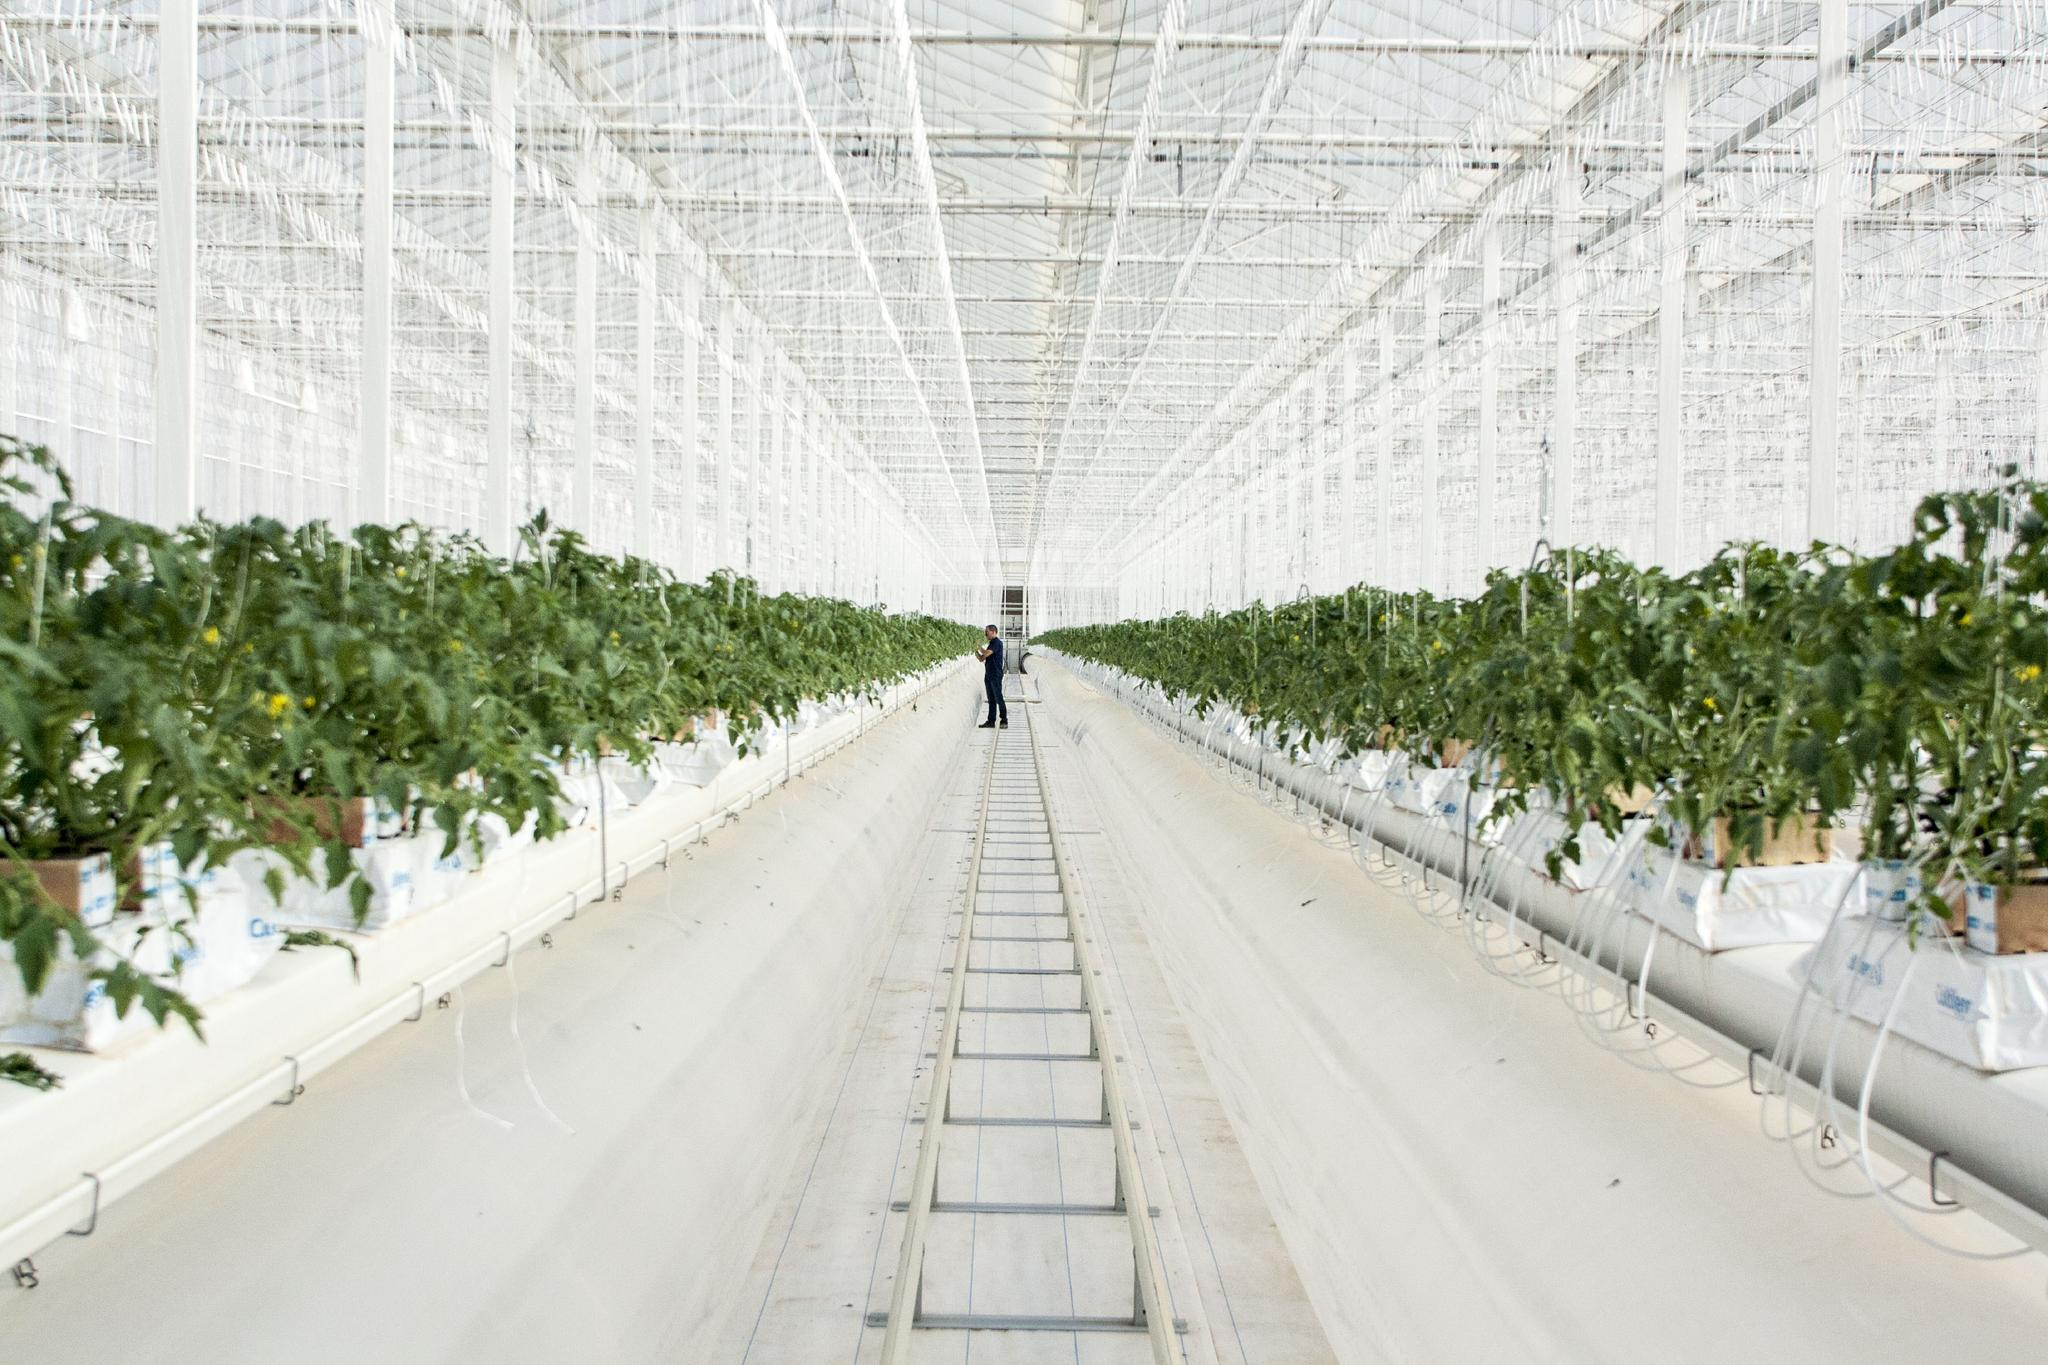 Pure Harvest High-Tech Greenhouse